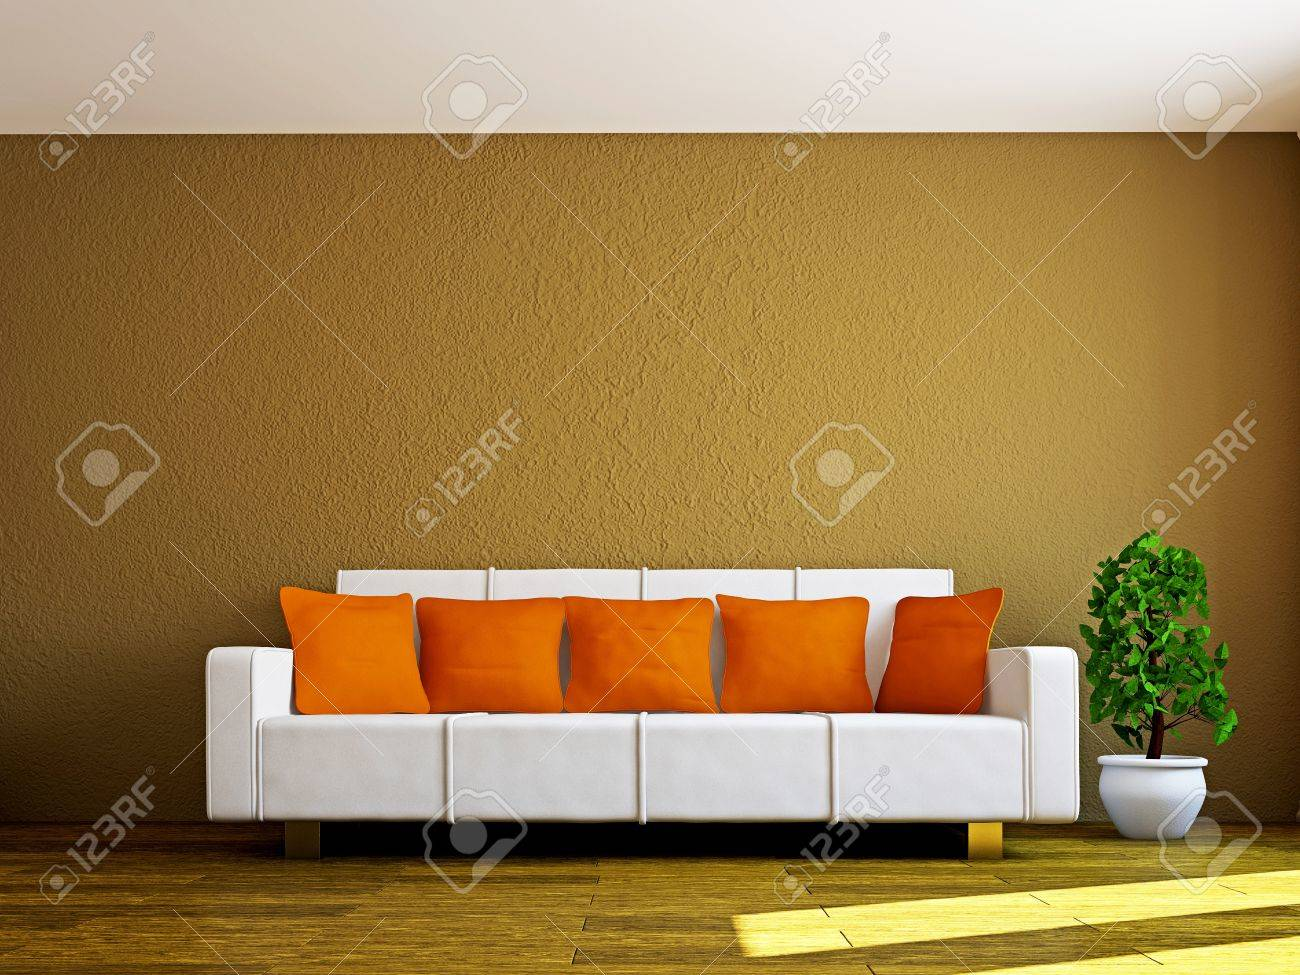 Livingroom with sofa and a plant near the wall Stock Photo - 16820258